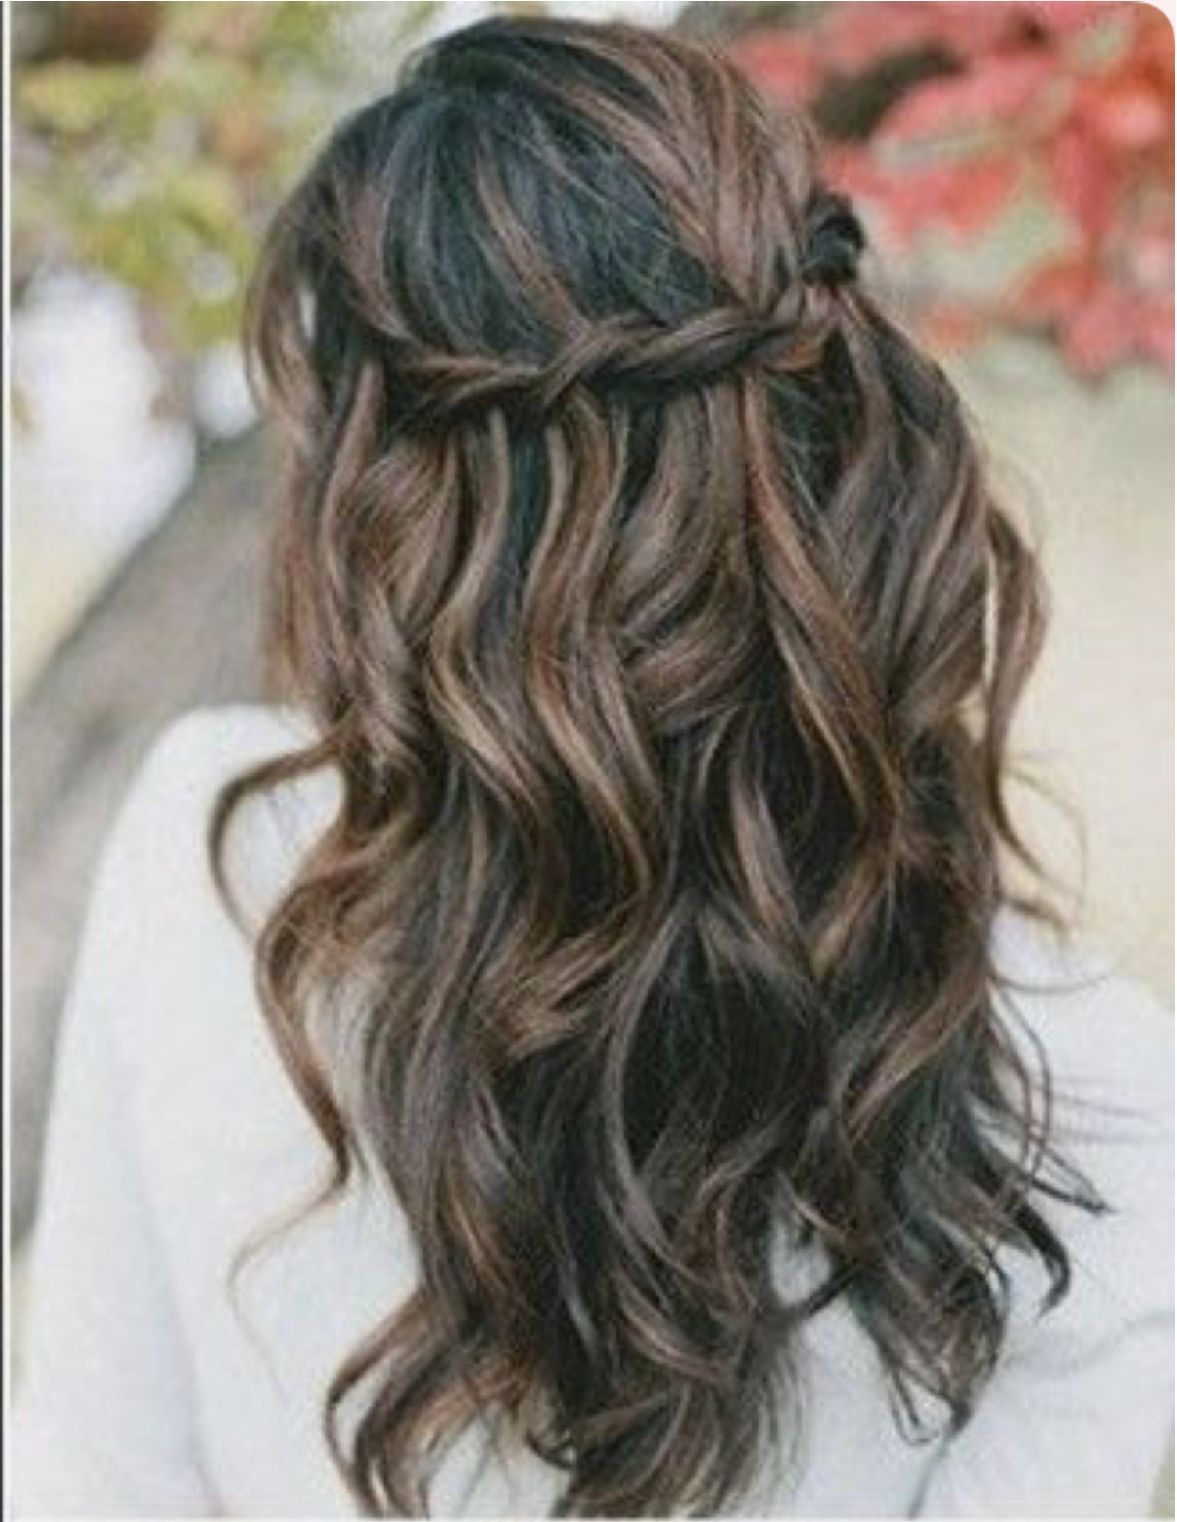 Engagement Shoot Hairstyle Wedding Hairstyles For Long Hair Prom Hairstyles For Long Hair Wedding Hair Down